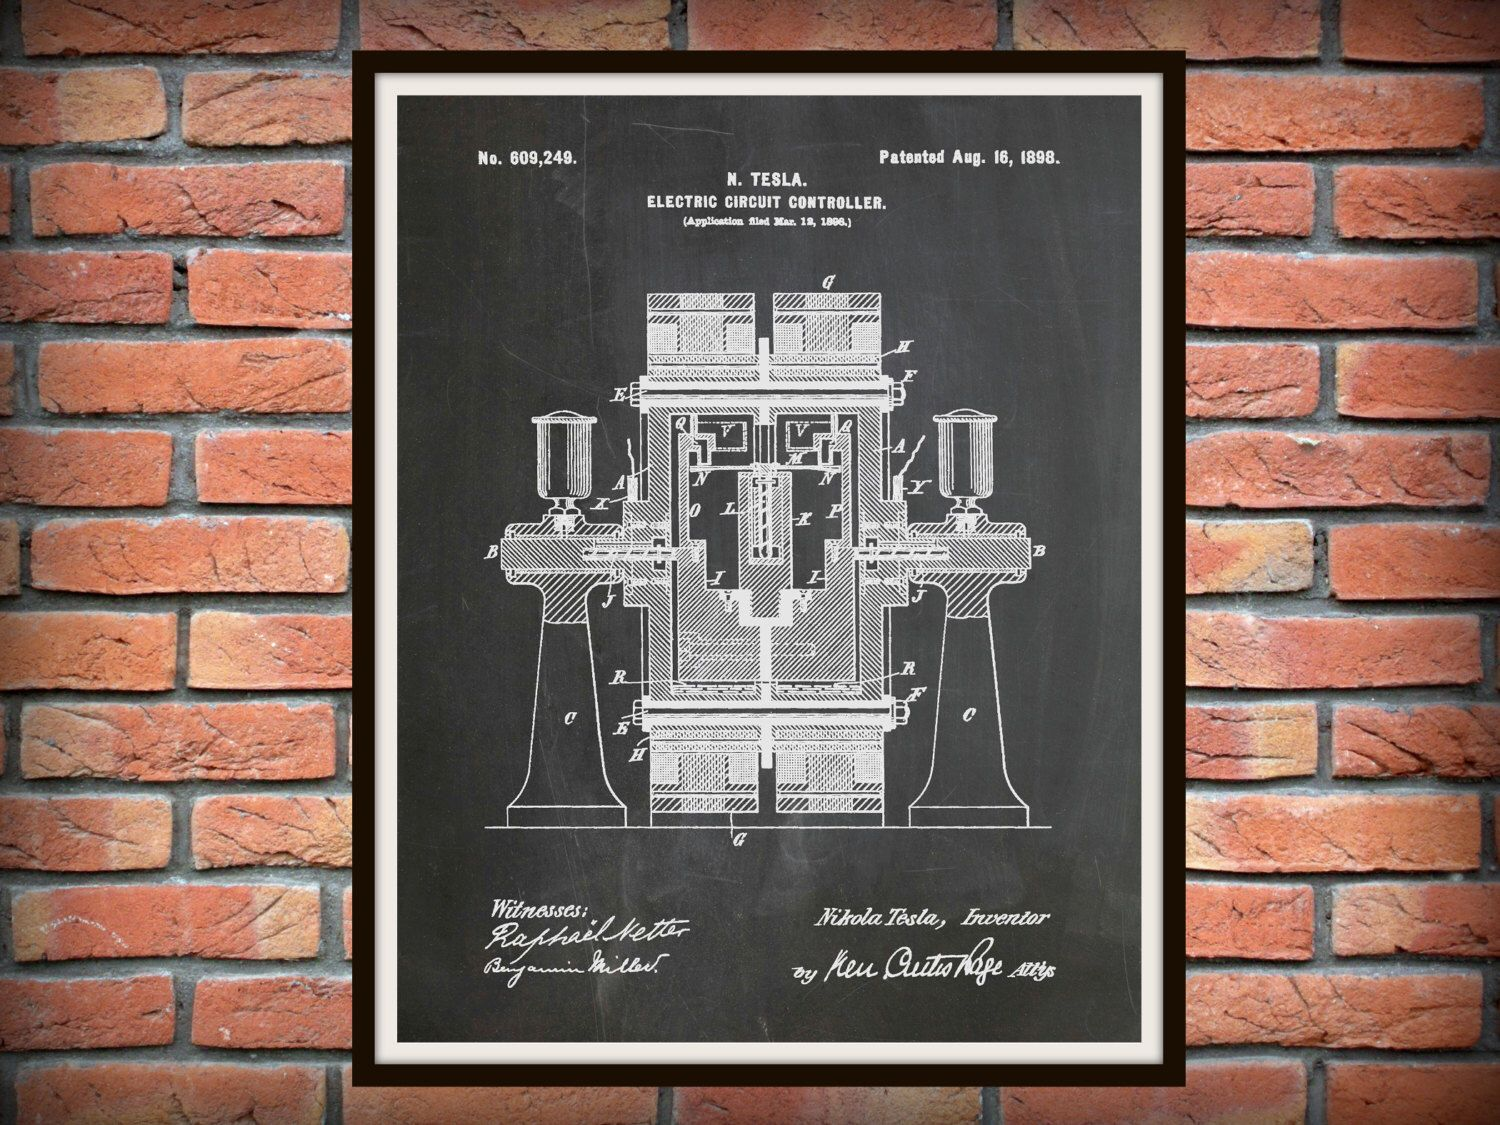 Patent 1898 Tesla Electric Circuit Controller - Art Print - Poster - Science Lab - Electrical Engineer Wall Art - Electricity Art by BlueMoonPatentPrints on Etsy https://www.etsy.com/listing/258329269/patent-1898-tesla-electric-circuit